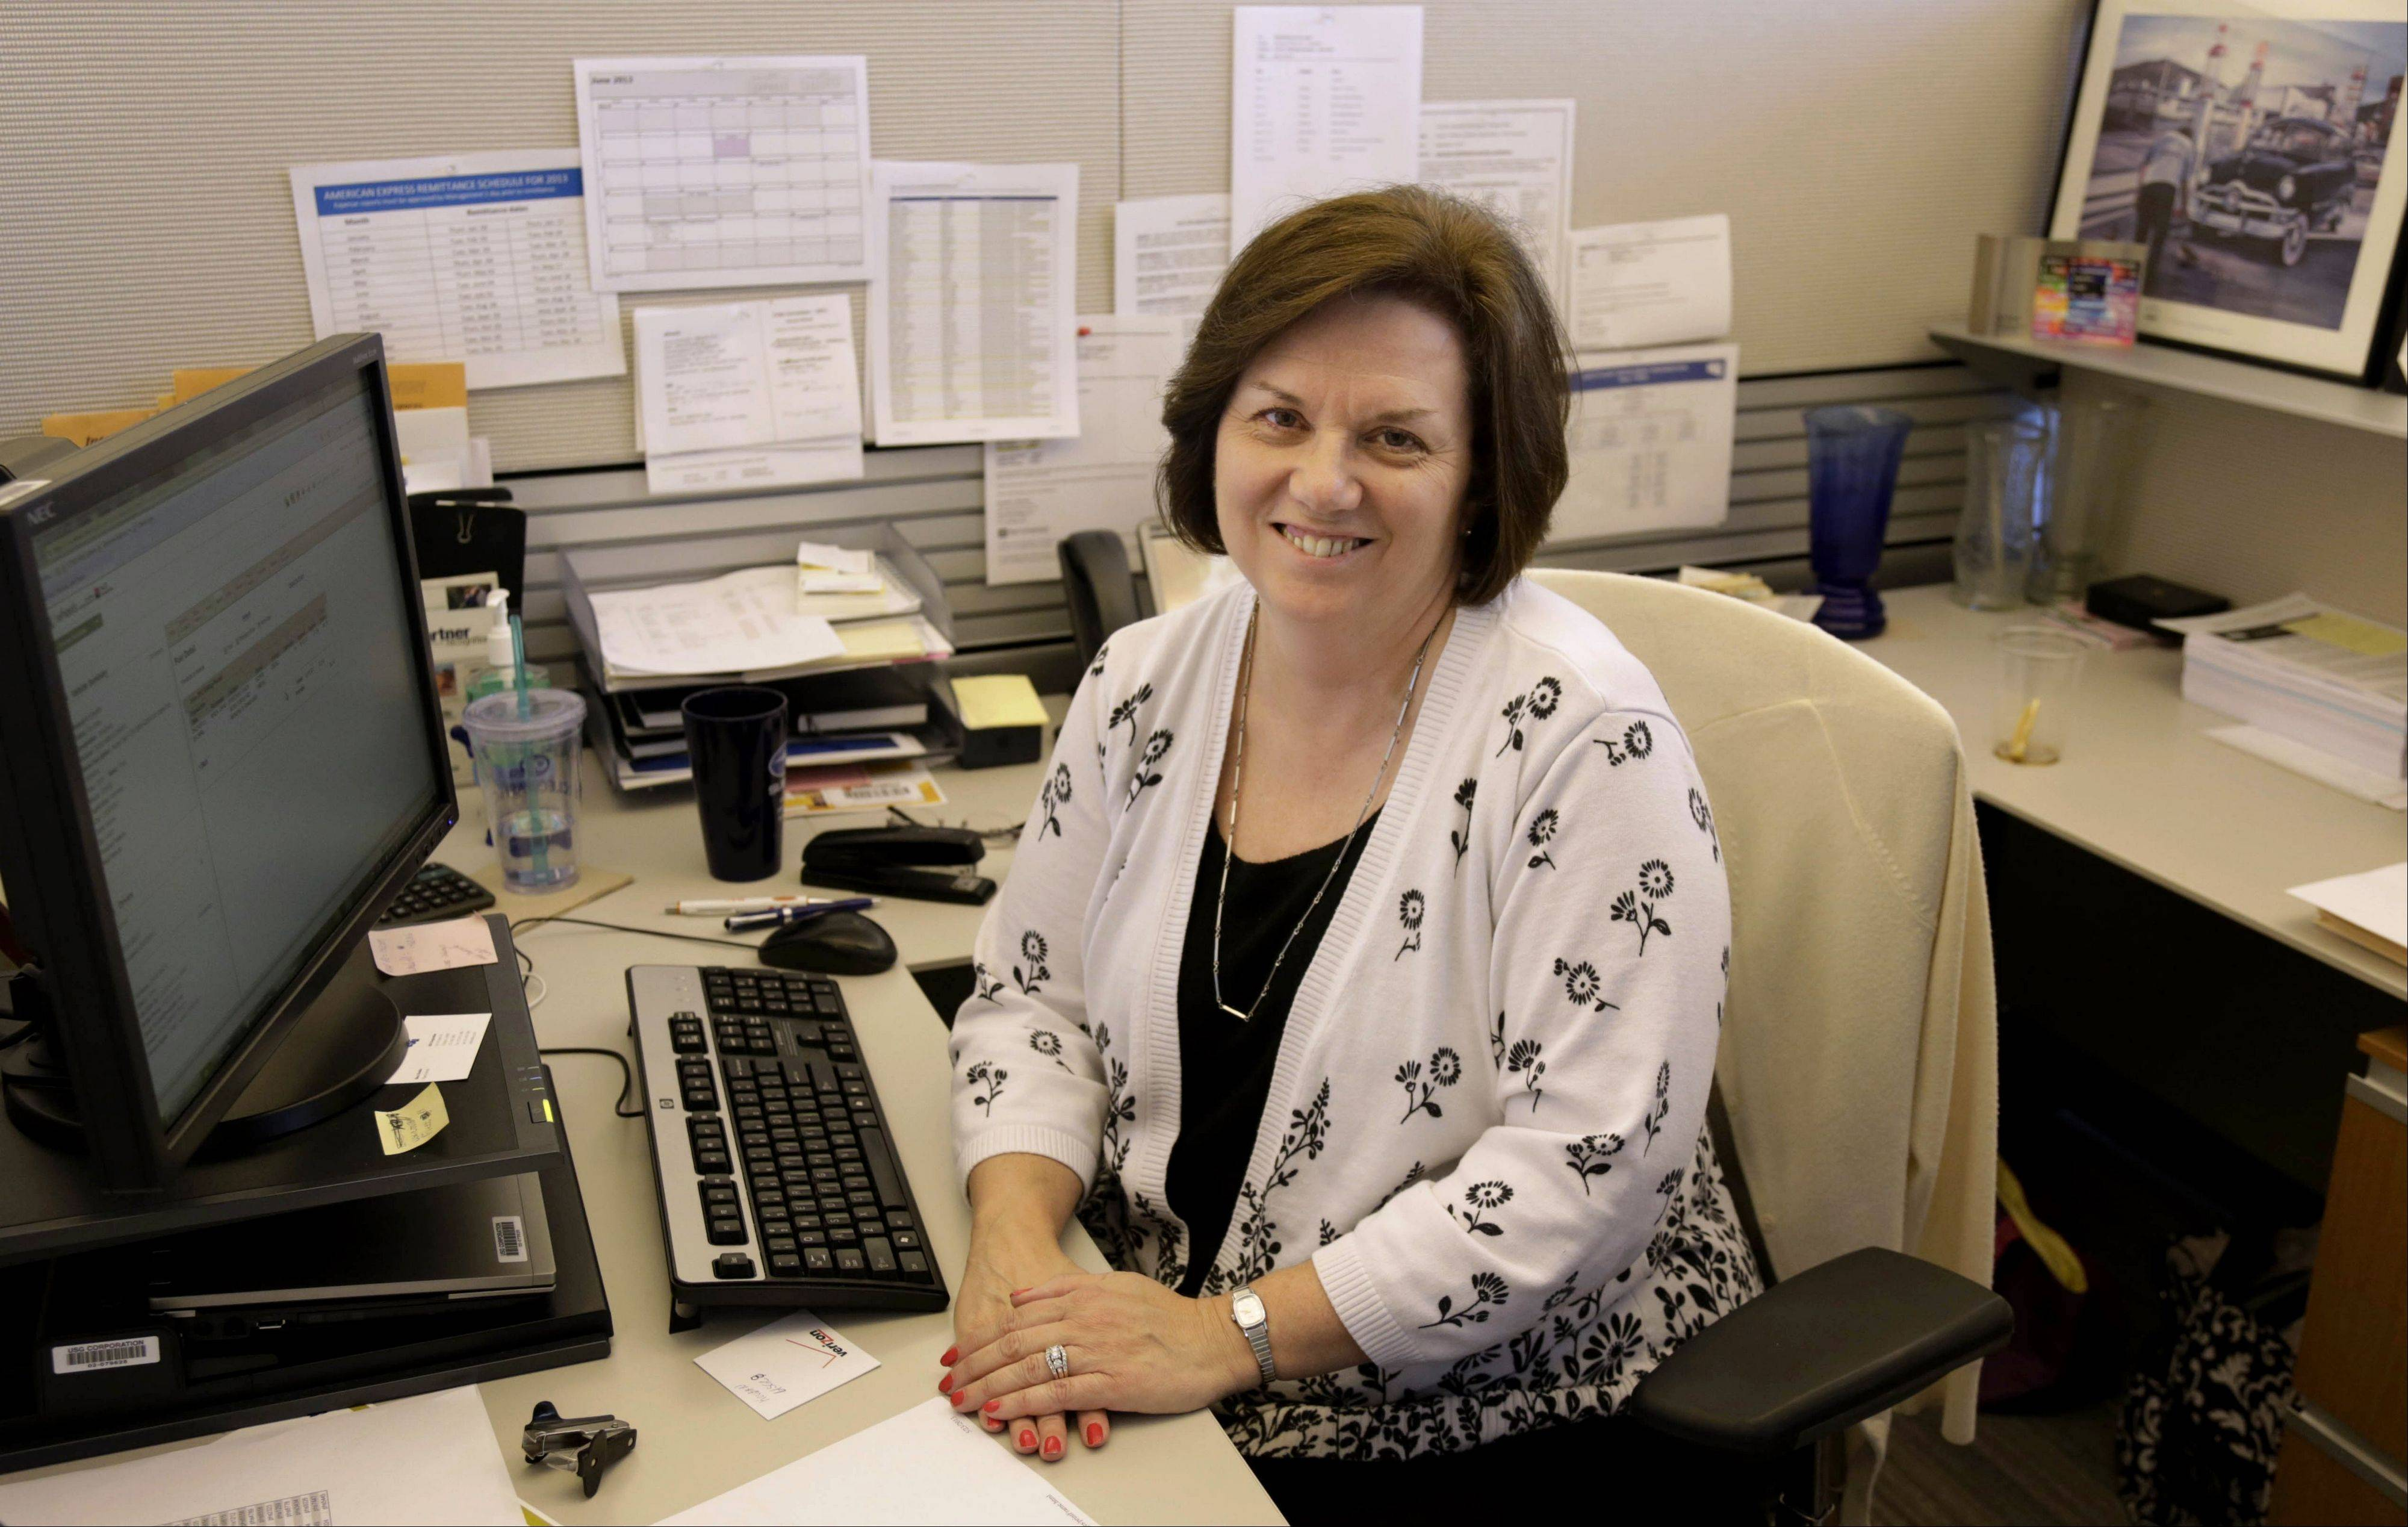 In this June 3, 2013, photo, Nora Kouba, an employee at USG Corporation sits at her workstation in Chicago. Over the years, Kouba has made use of a benefit offered by USG that allows their workers to buy and sell vacation time, a perk that gives workers more flexibility in managing their time off.